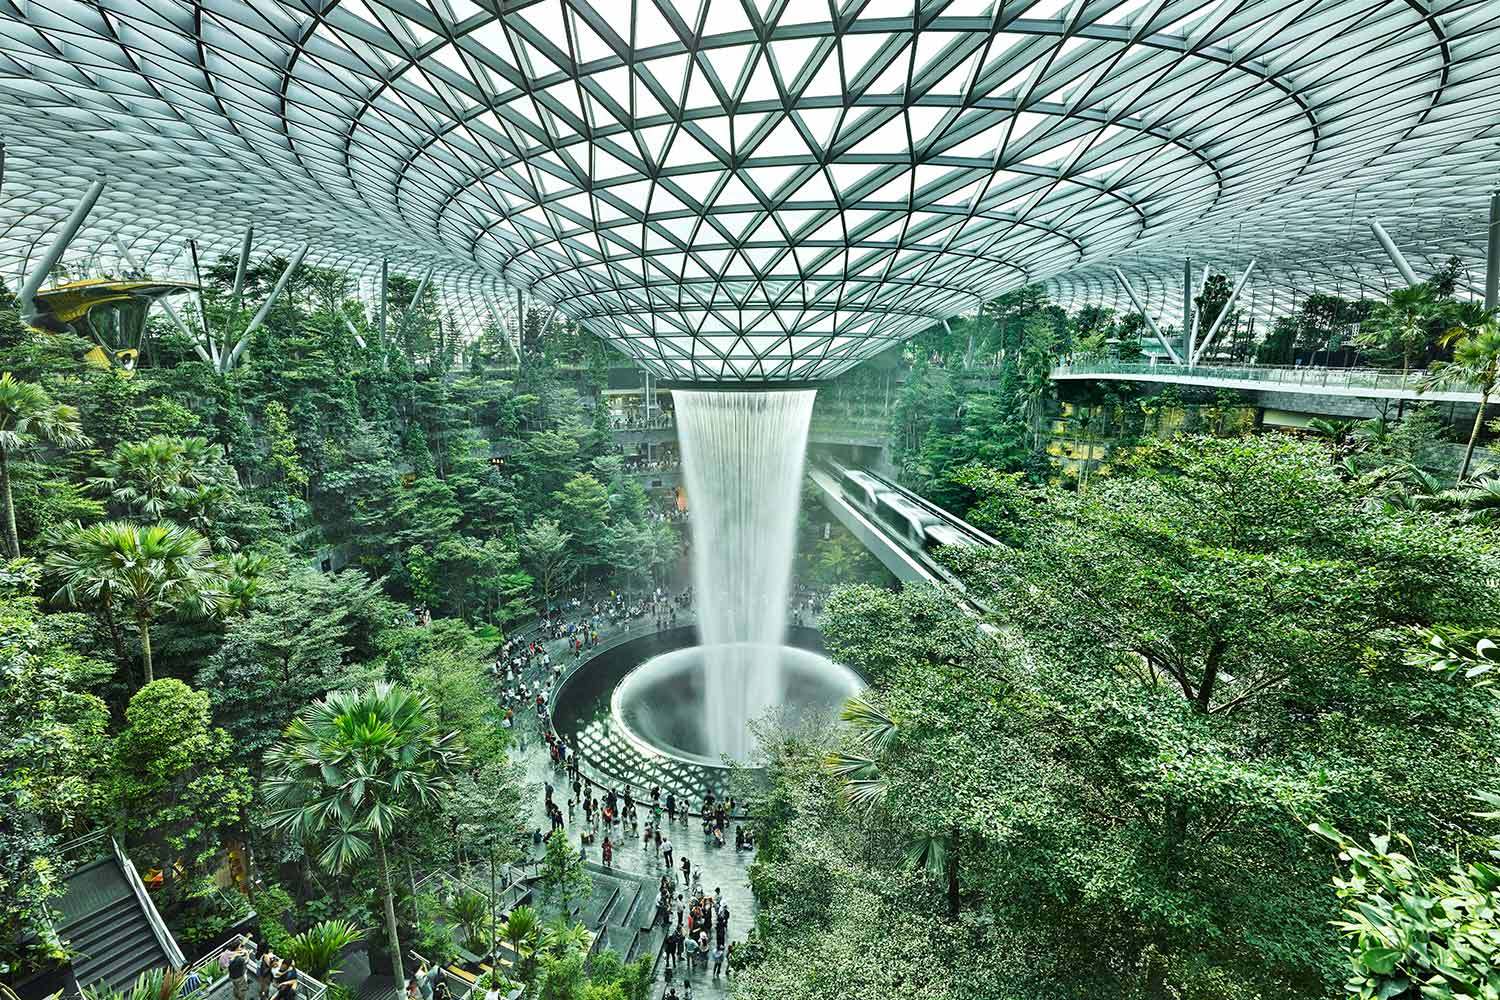 The world's tallest indoor waterfall named the Rain Vortex at Jewel Changi Airport